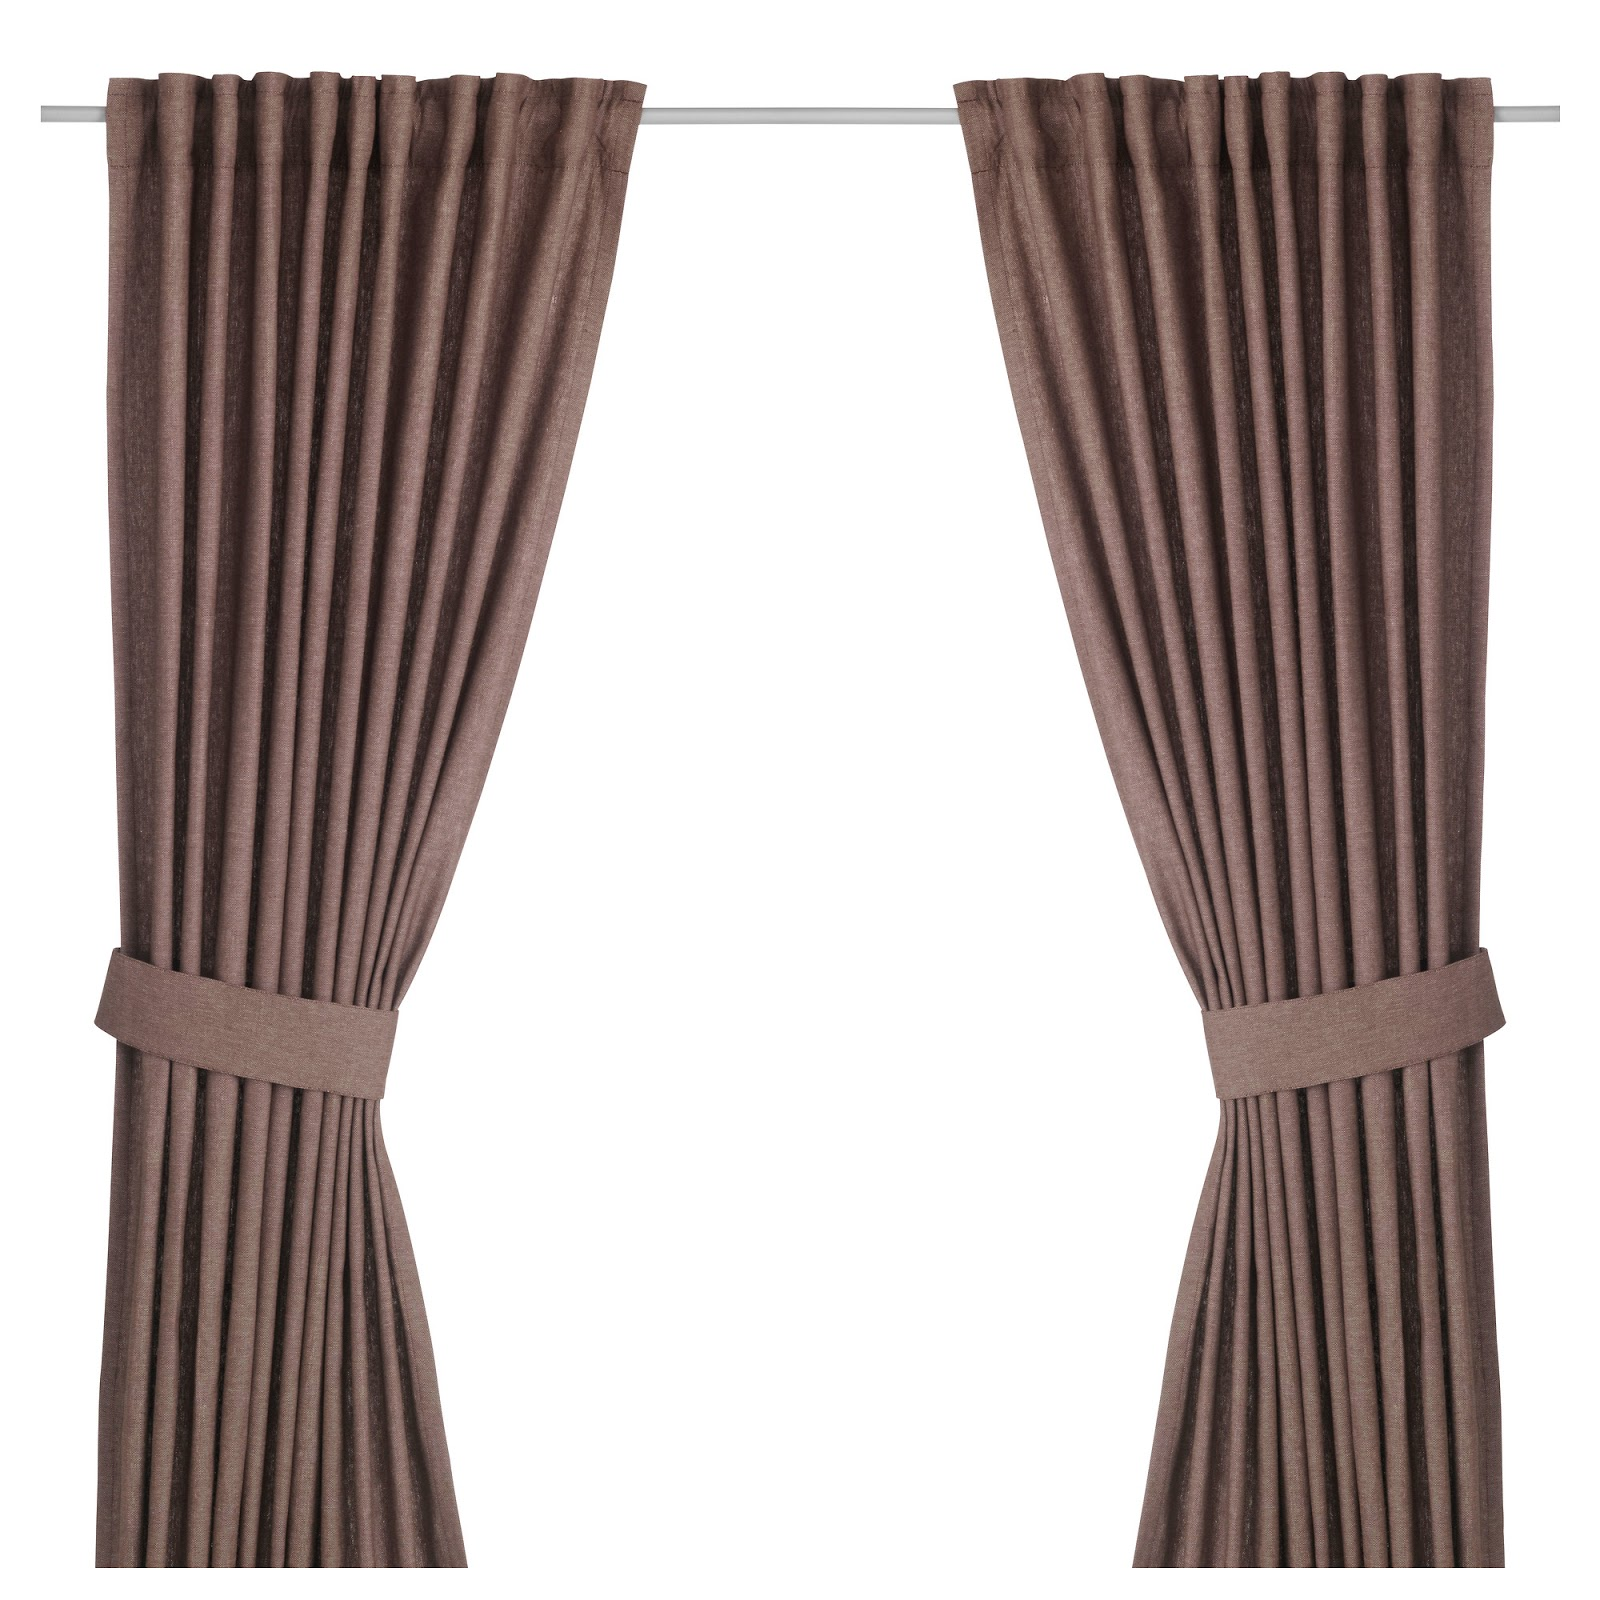 Curtain Rod Tension That Hangs From Ceiling Tie Backs Track System